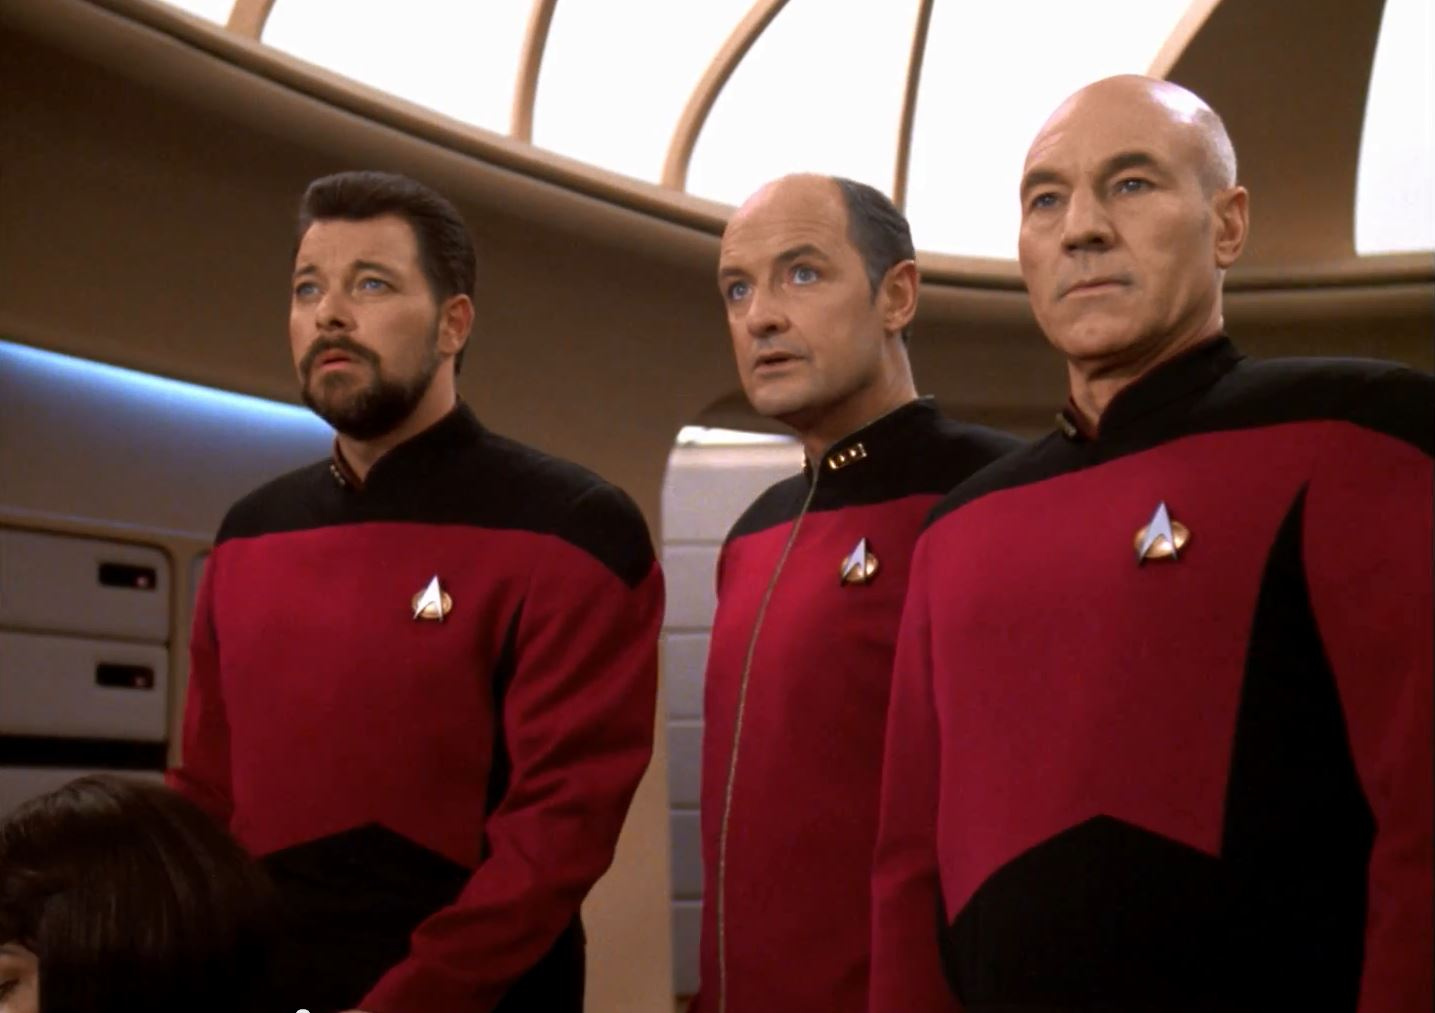 Star Trek TNG Season 7 Blu-Ray Trailer - pegasus Picard and Riker